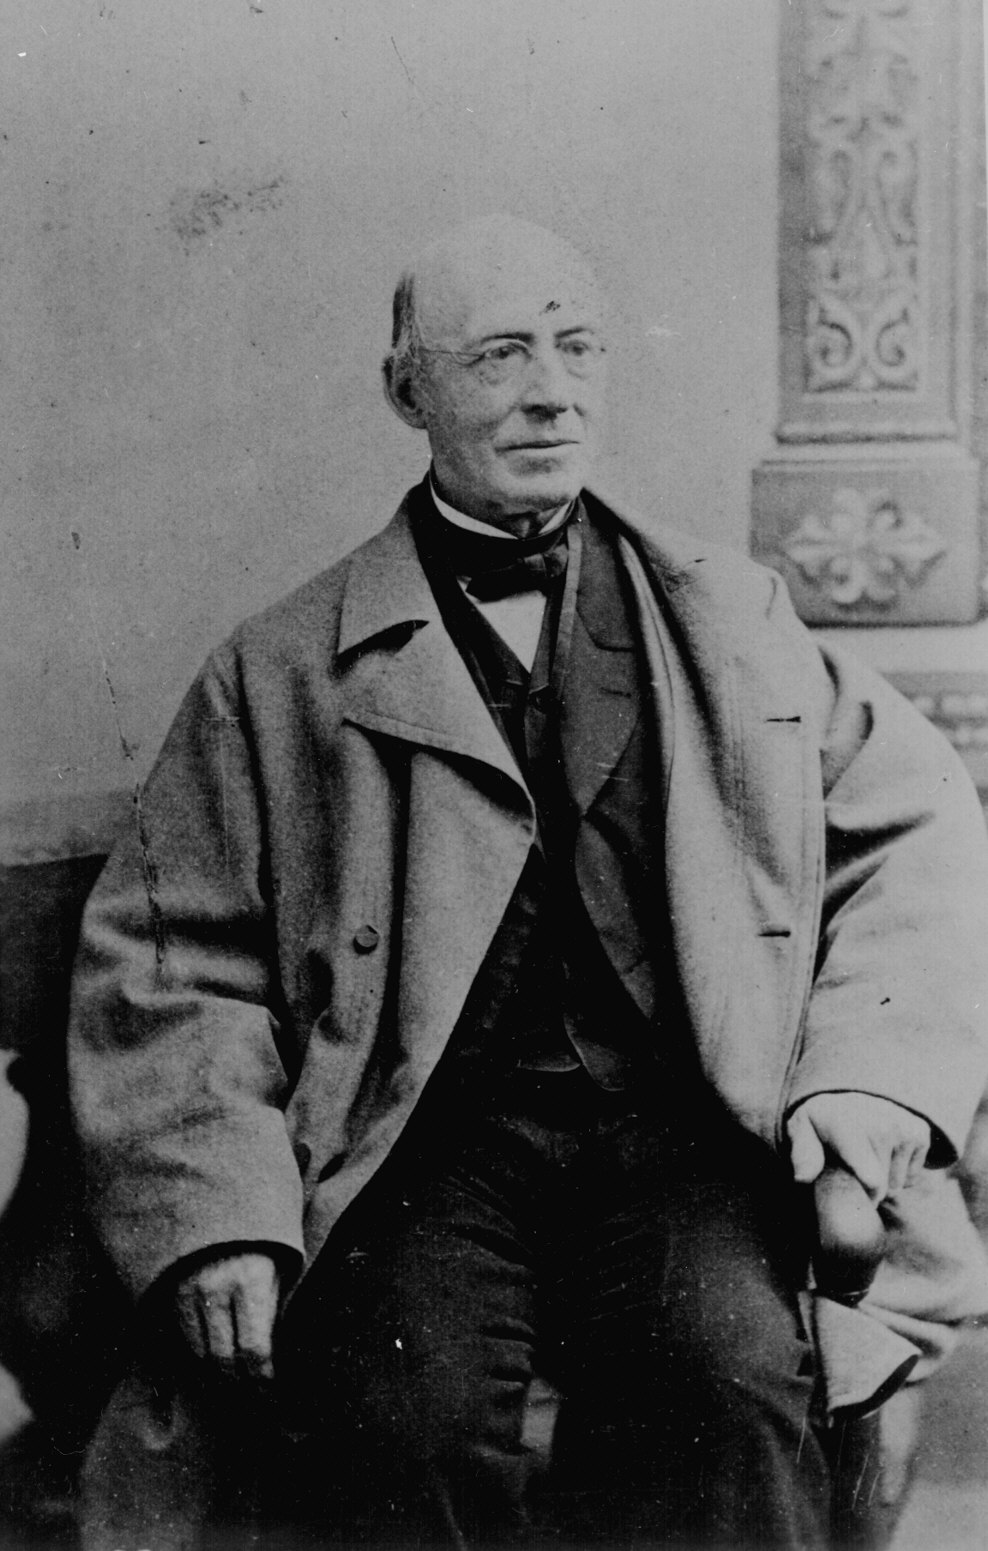 William Lloyd Garrison (click to see full size image)